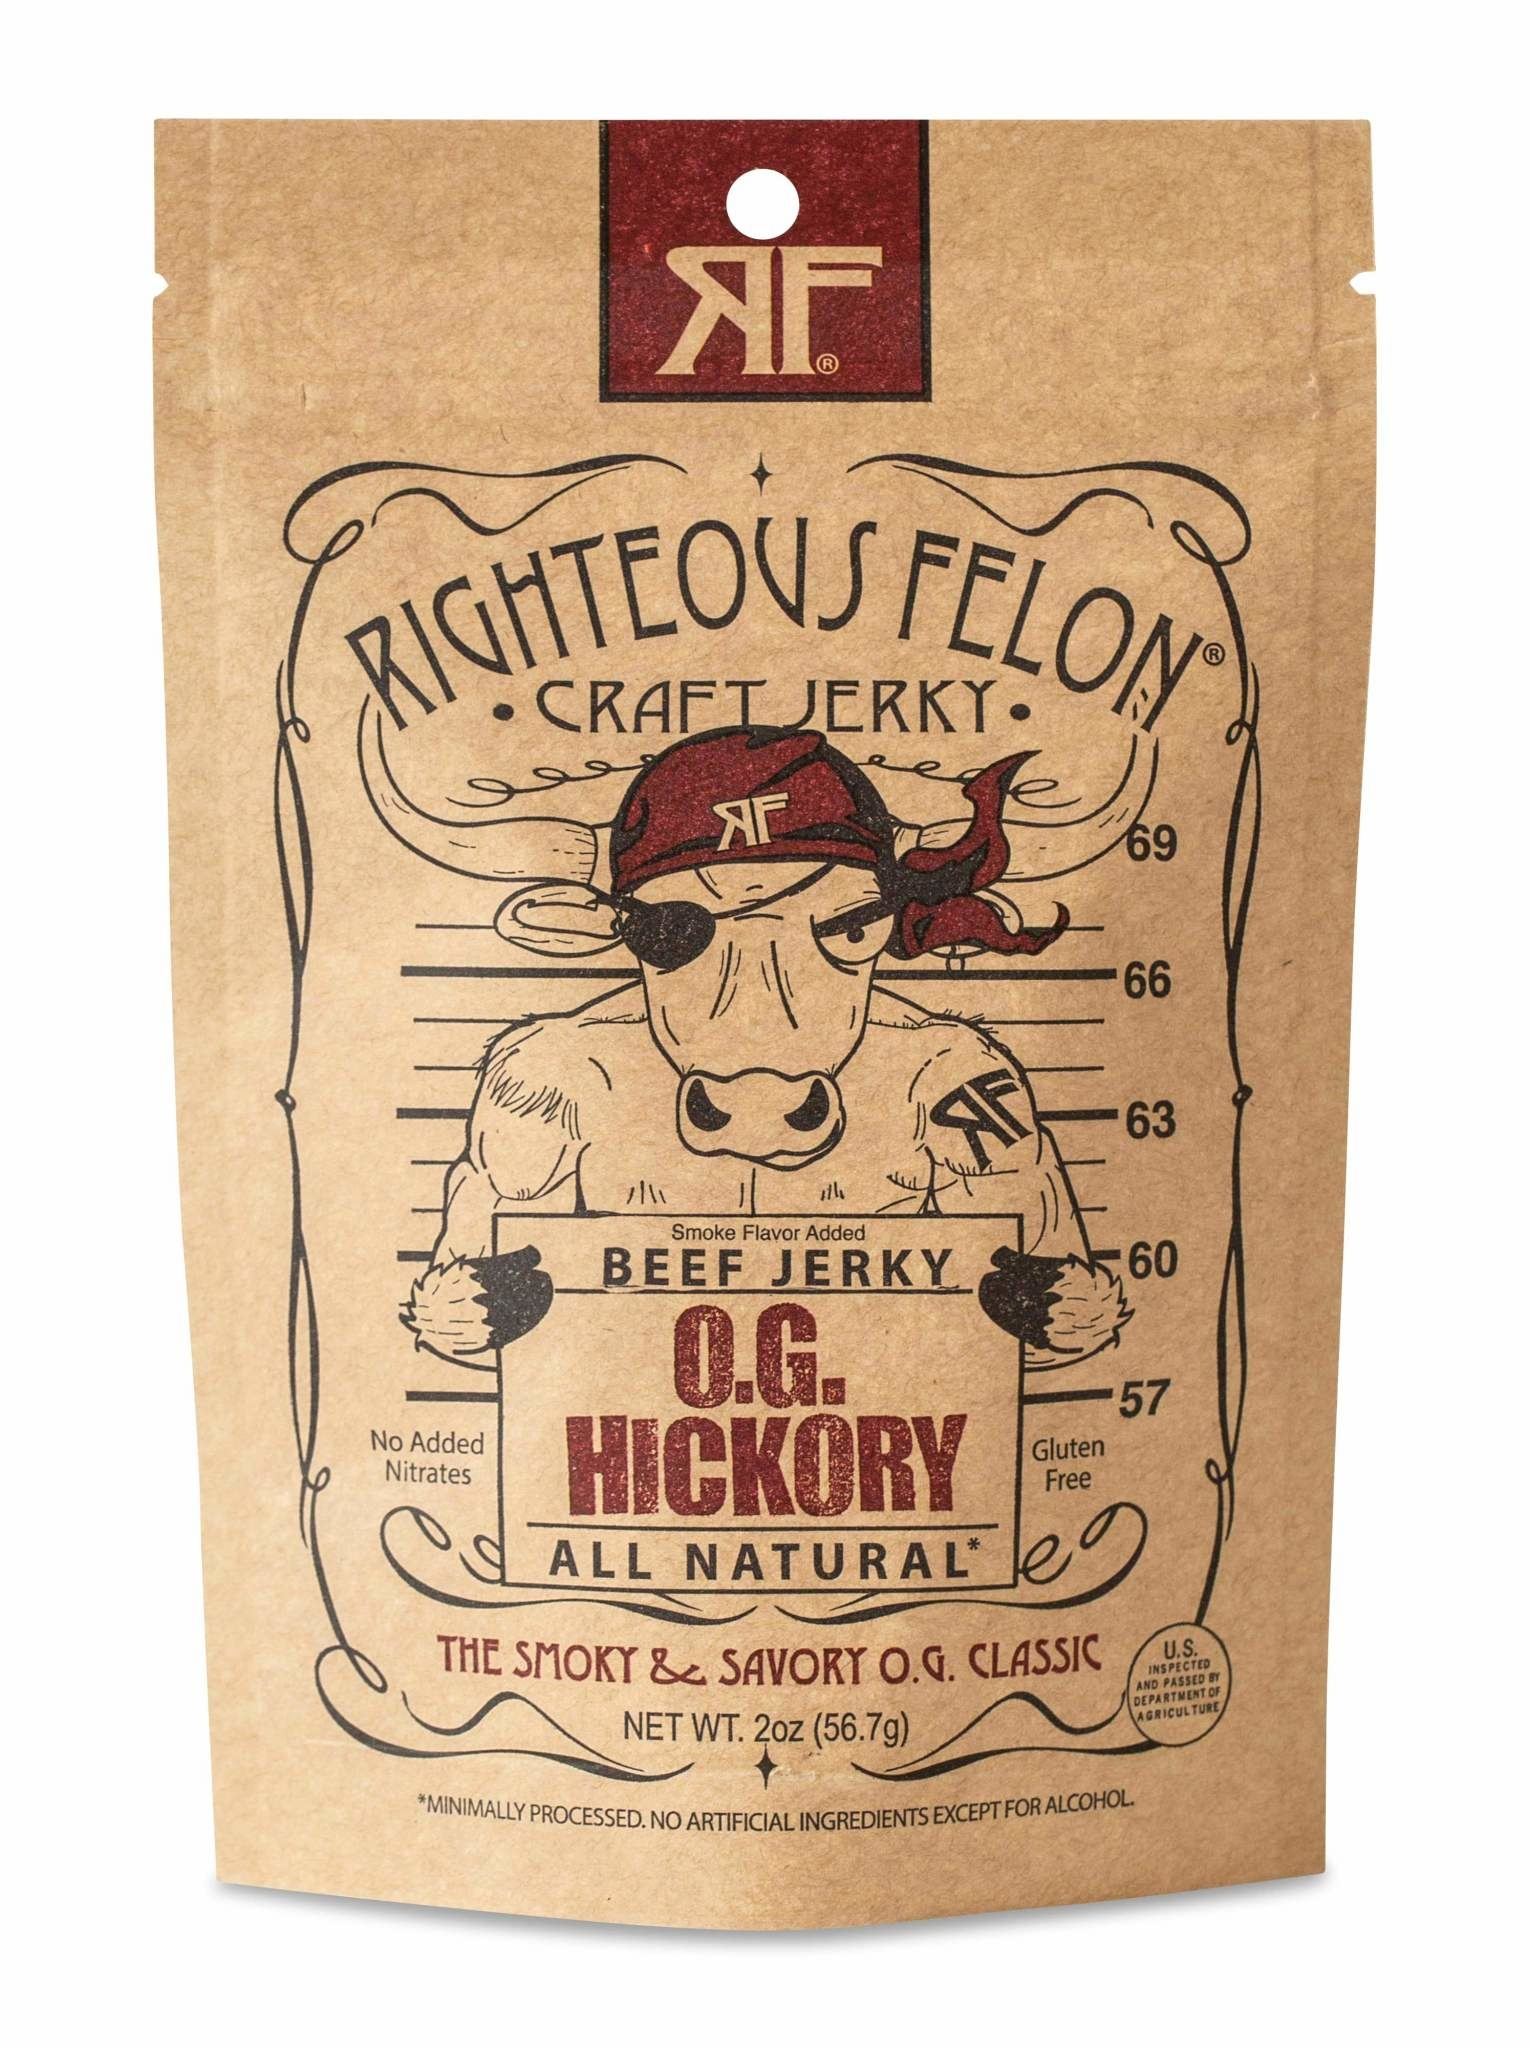 """Righteous Felon """"O.G. HIckory"""" Craft Beef Jerky 2oz. West Chester, PA"""